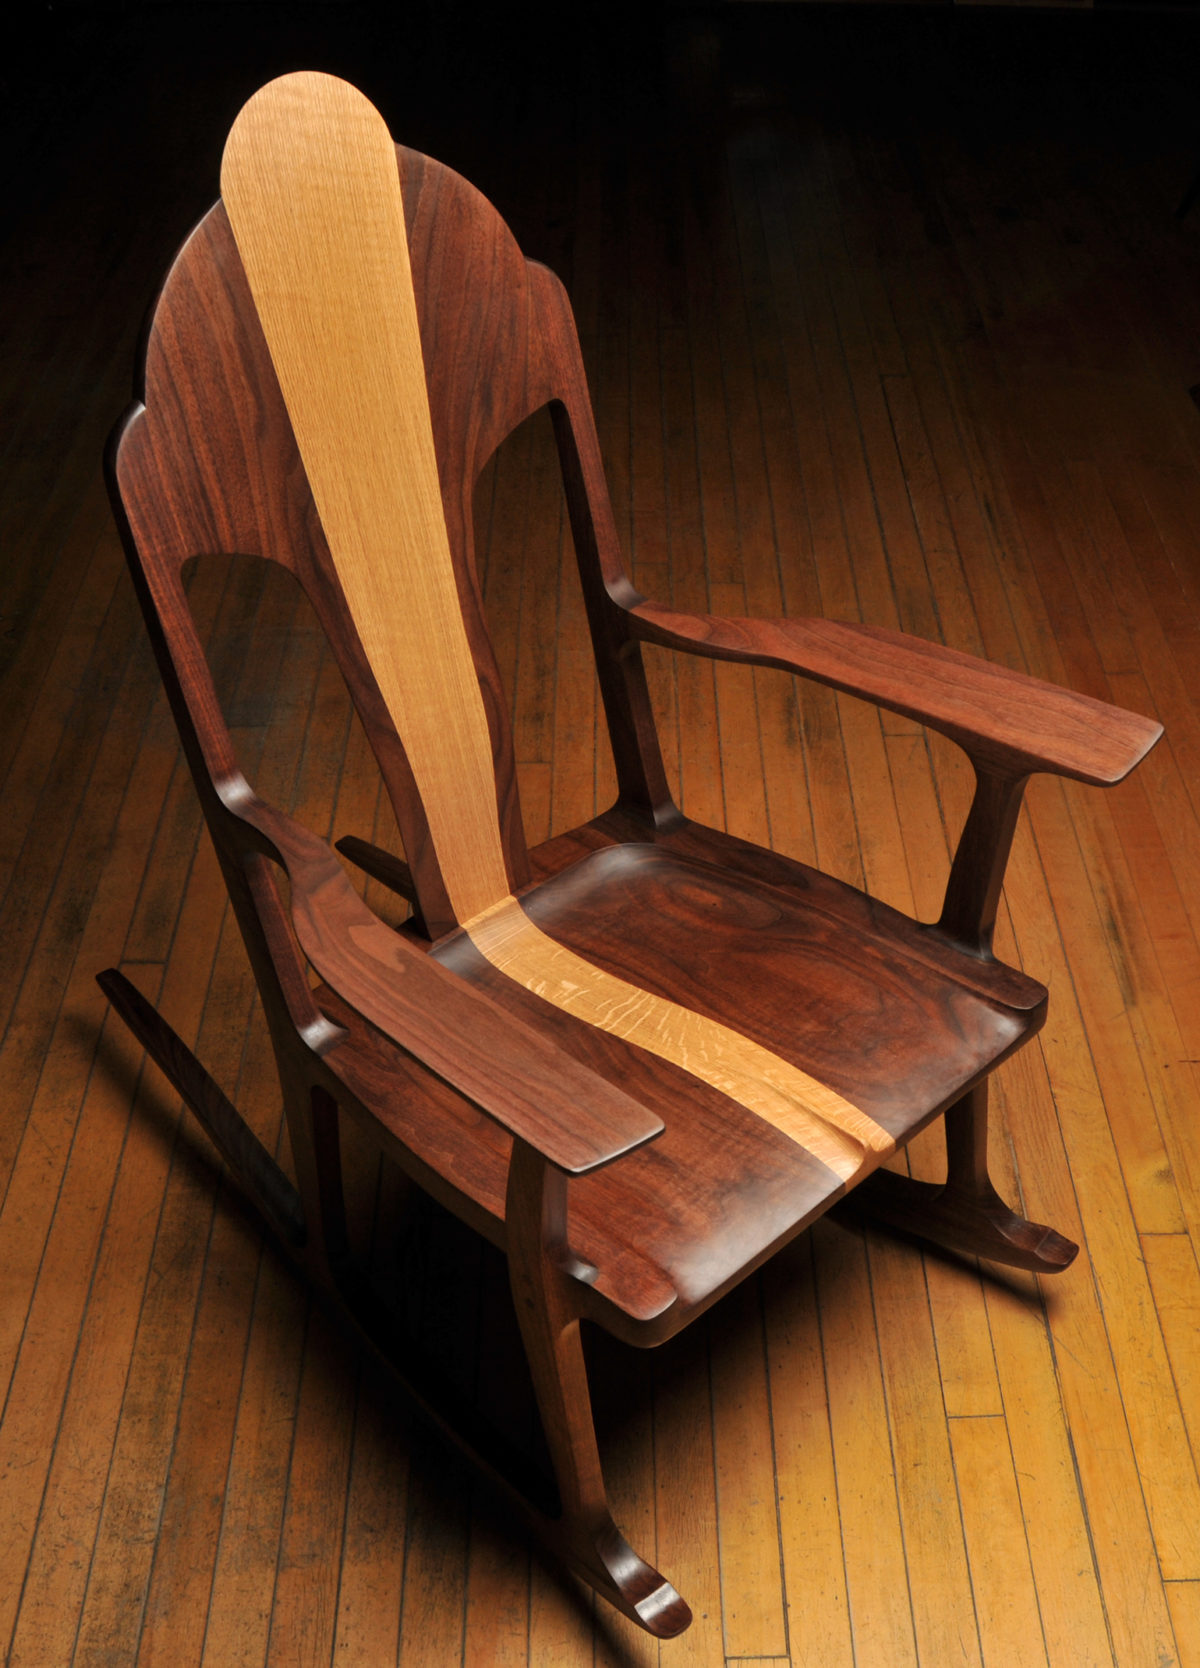 rocking chair fine woodworking bathroom stools and chairs uk let 39s rock finewoodworking